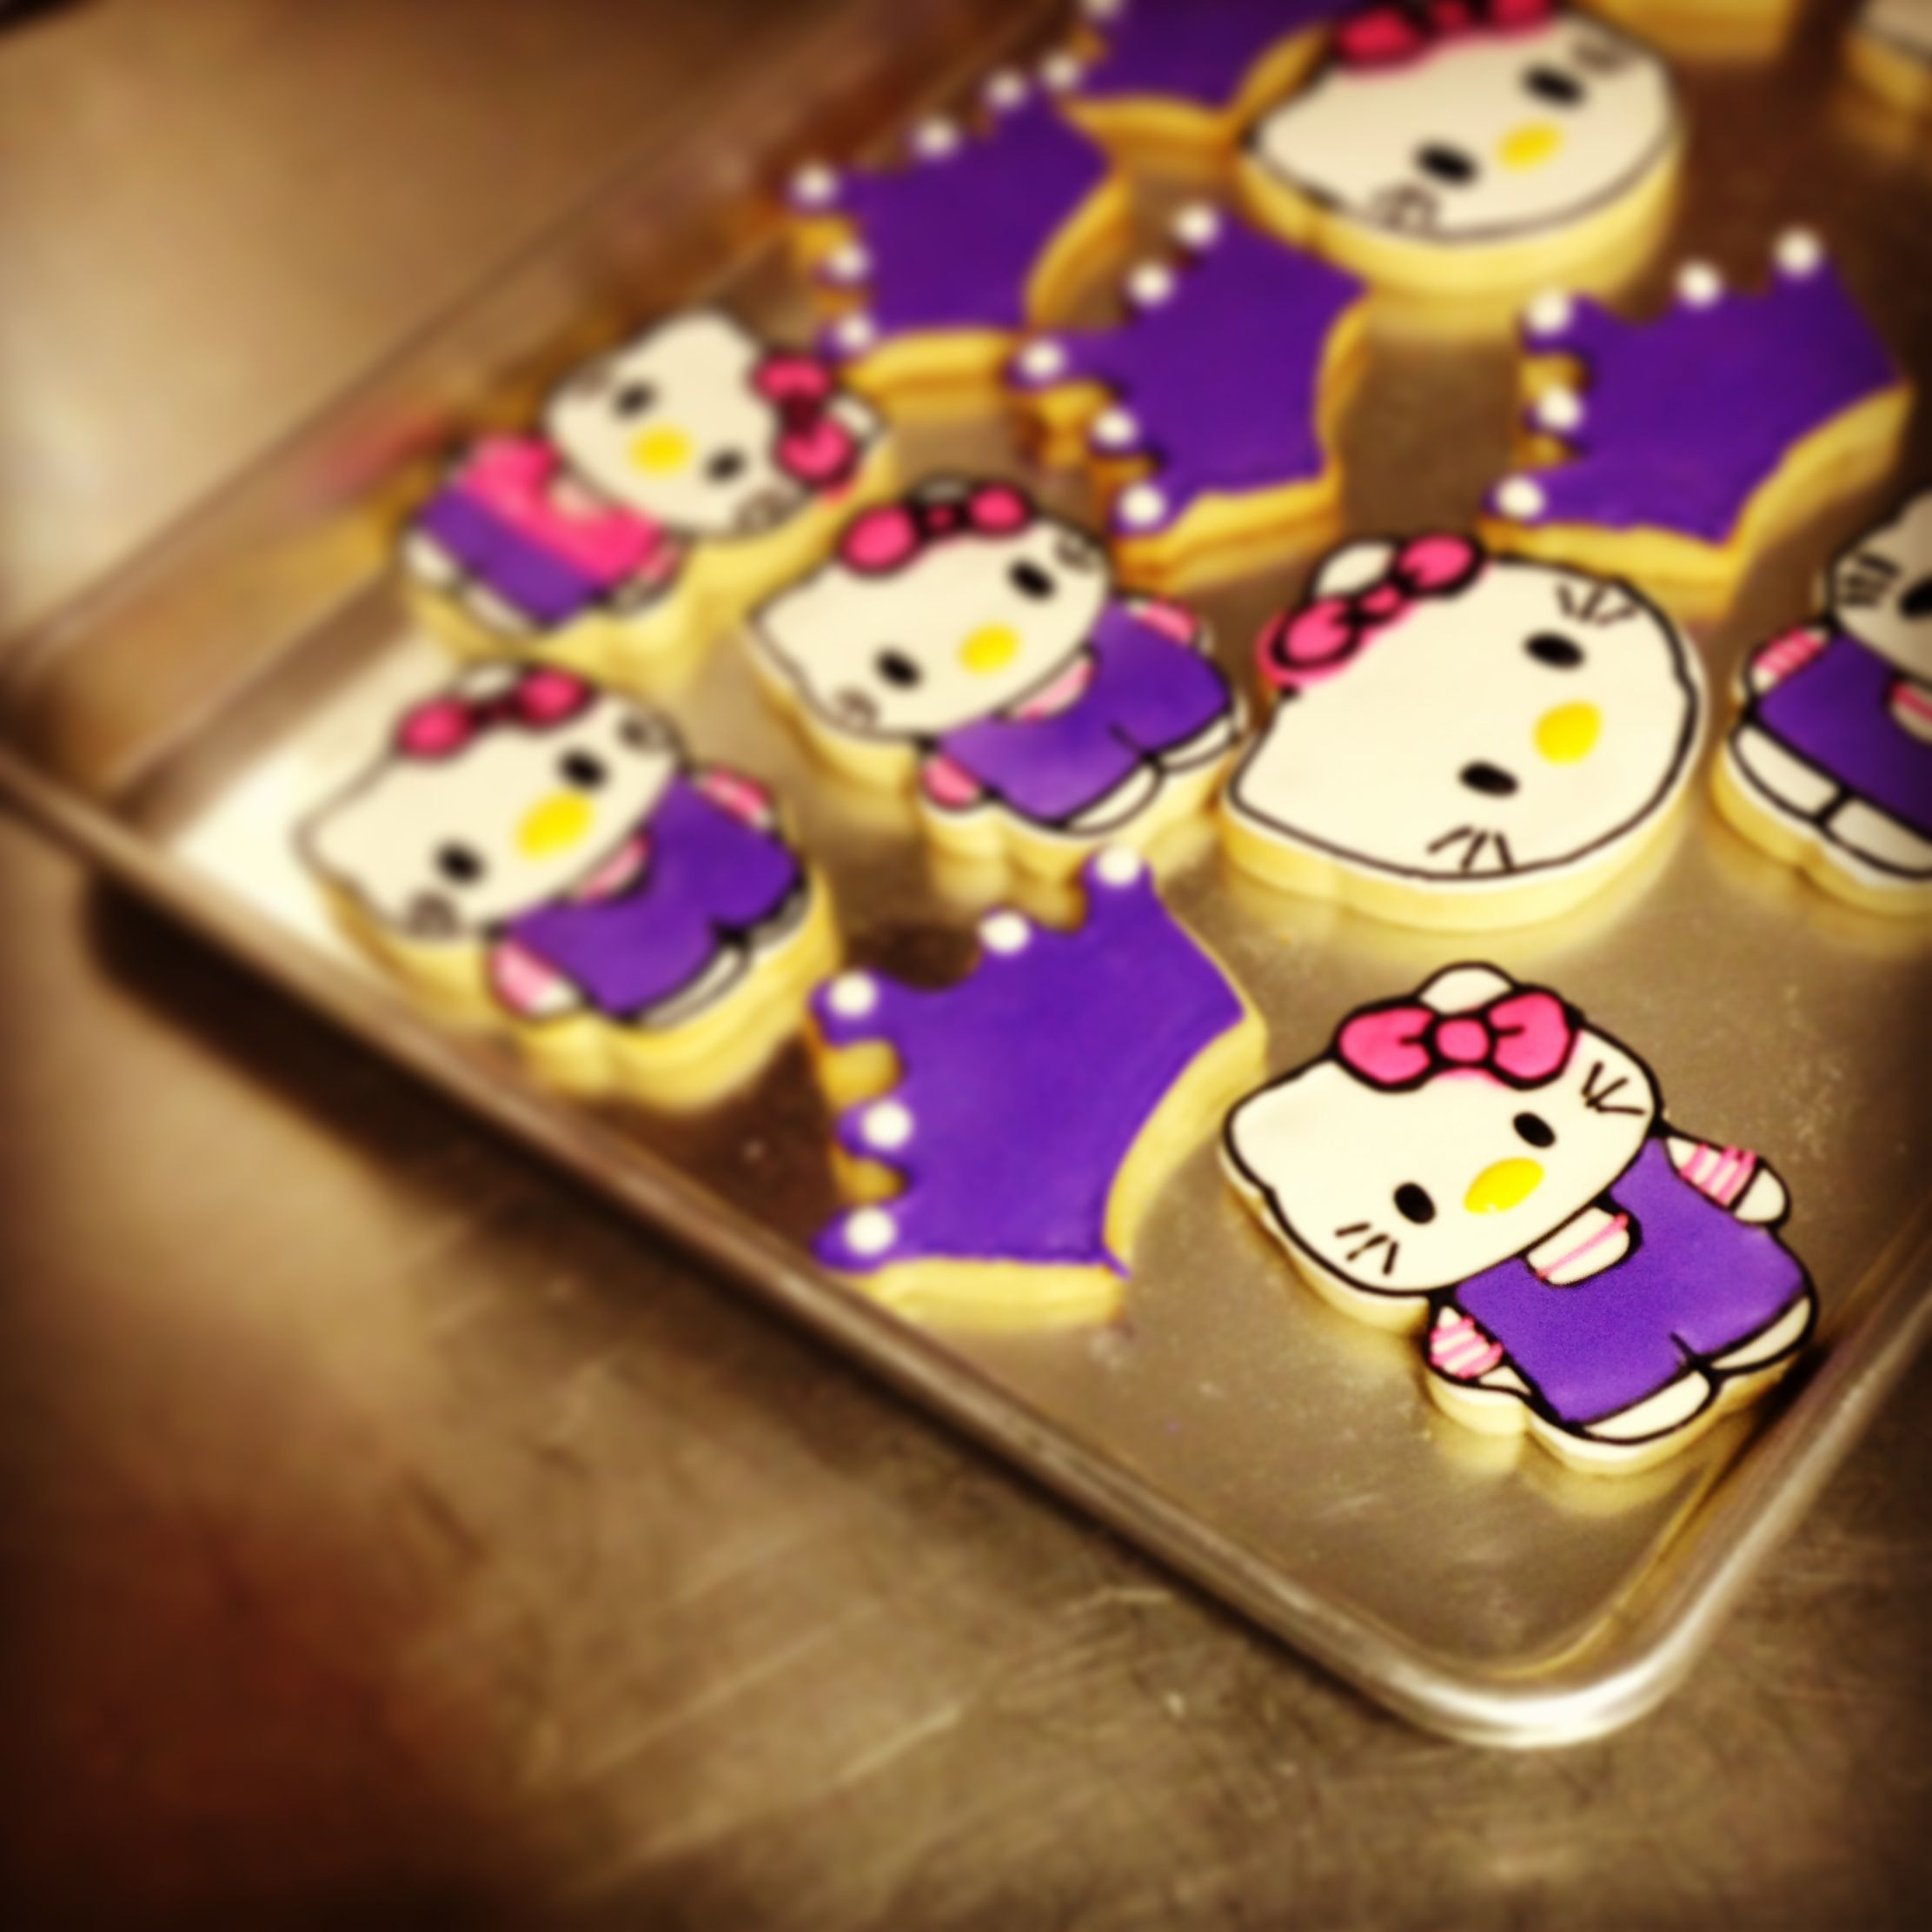 www.sweetelizabethcakes.com  #Hello Kitty #Decorated Sugar Cookies #Purple #cup cakes #Southern Louisiana.....:..Sweet Elizabeth Cake Designs